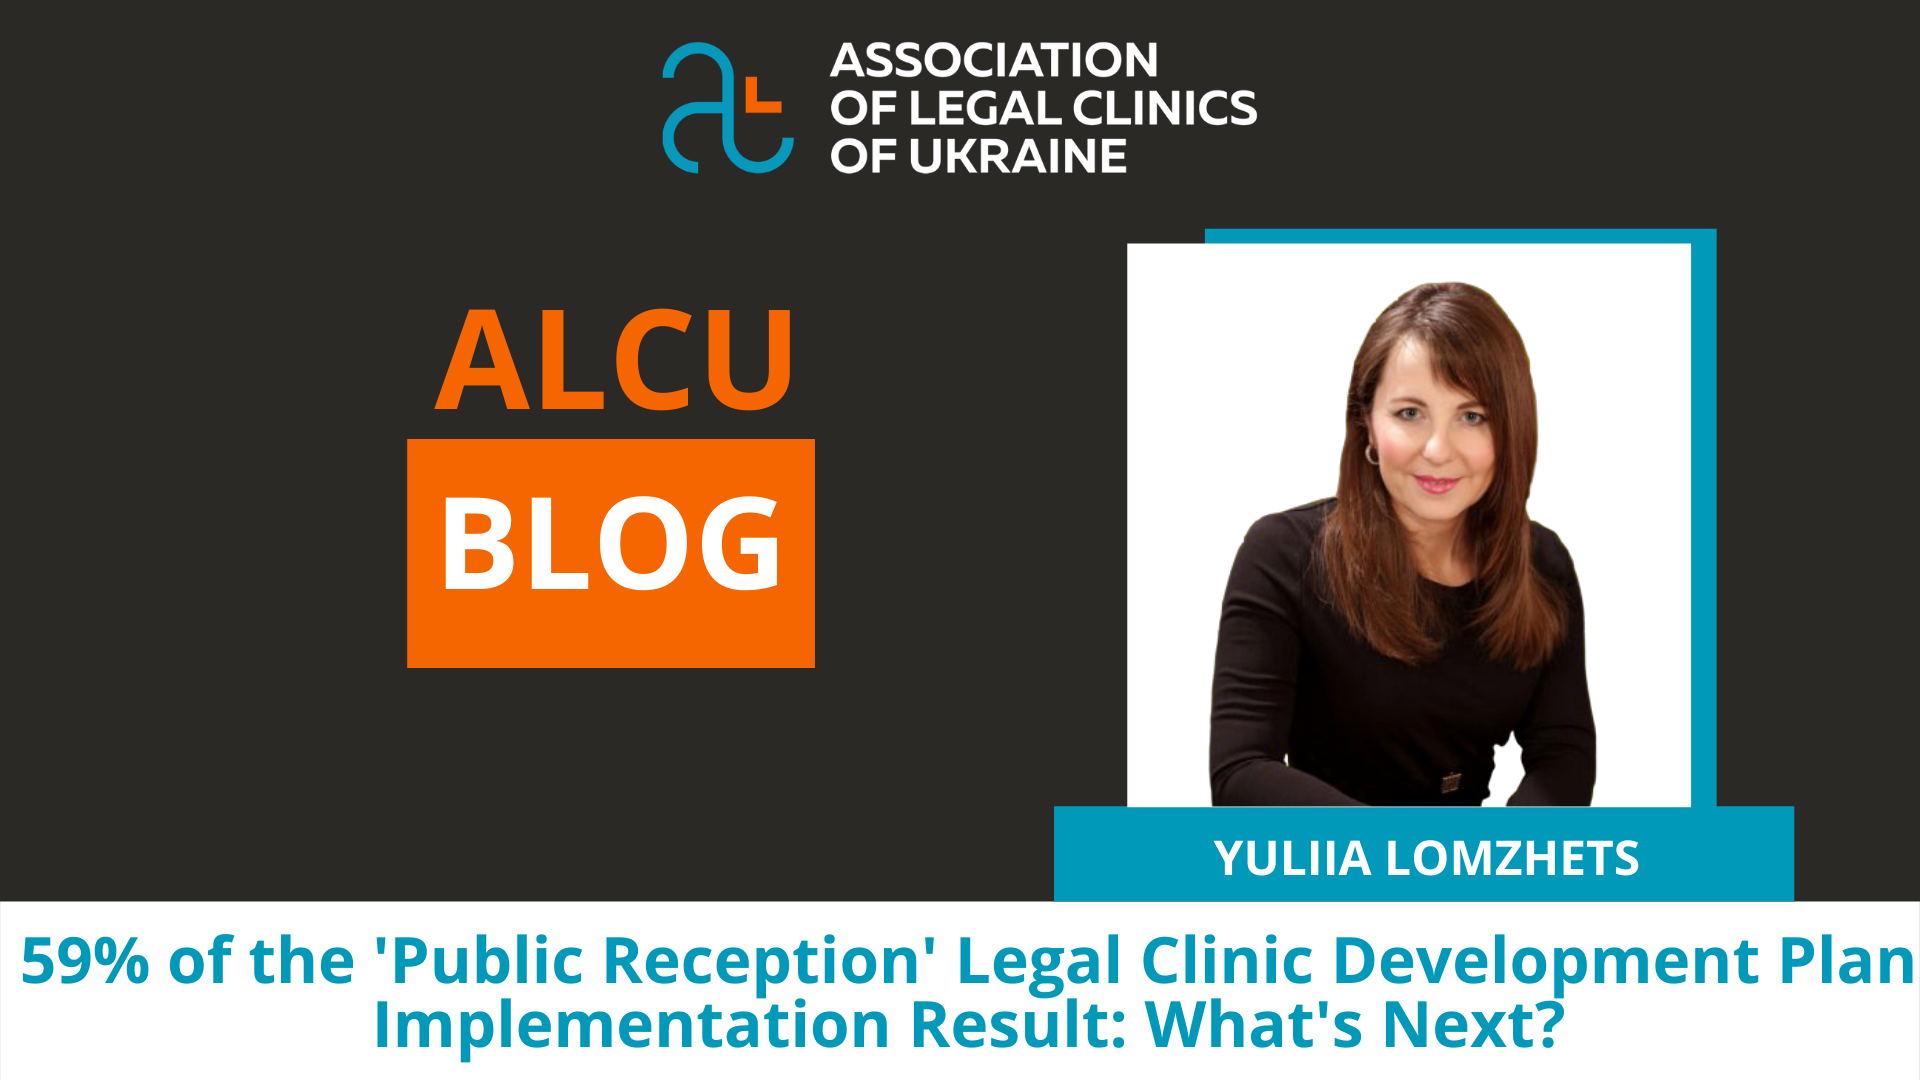 59% of the 'Public Reception' Legal Clinic Development Plan Implementation Result: What's Next?